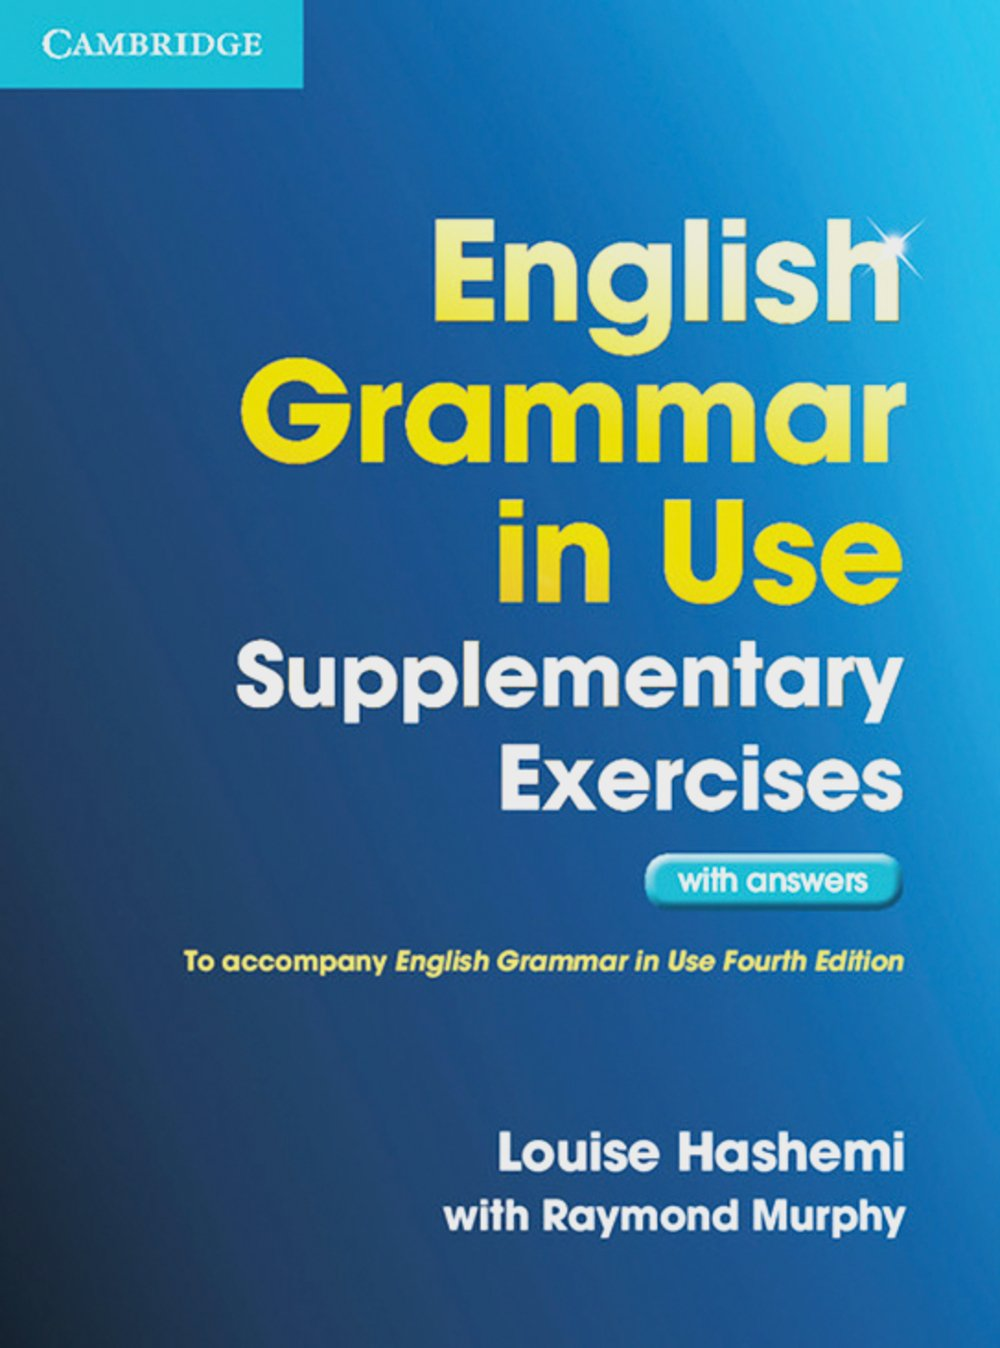 English Grammar in Use - Supplementary Exercises: Book with answers